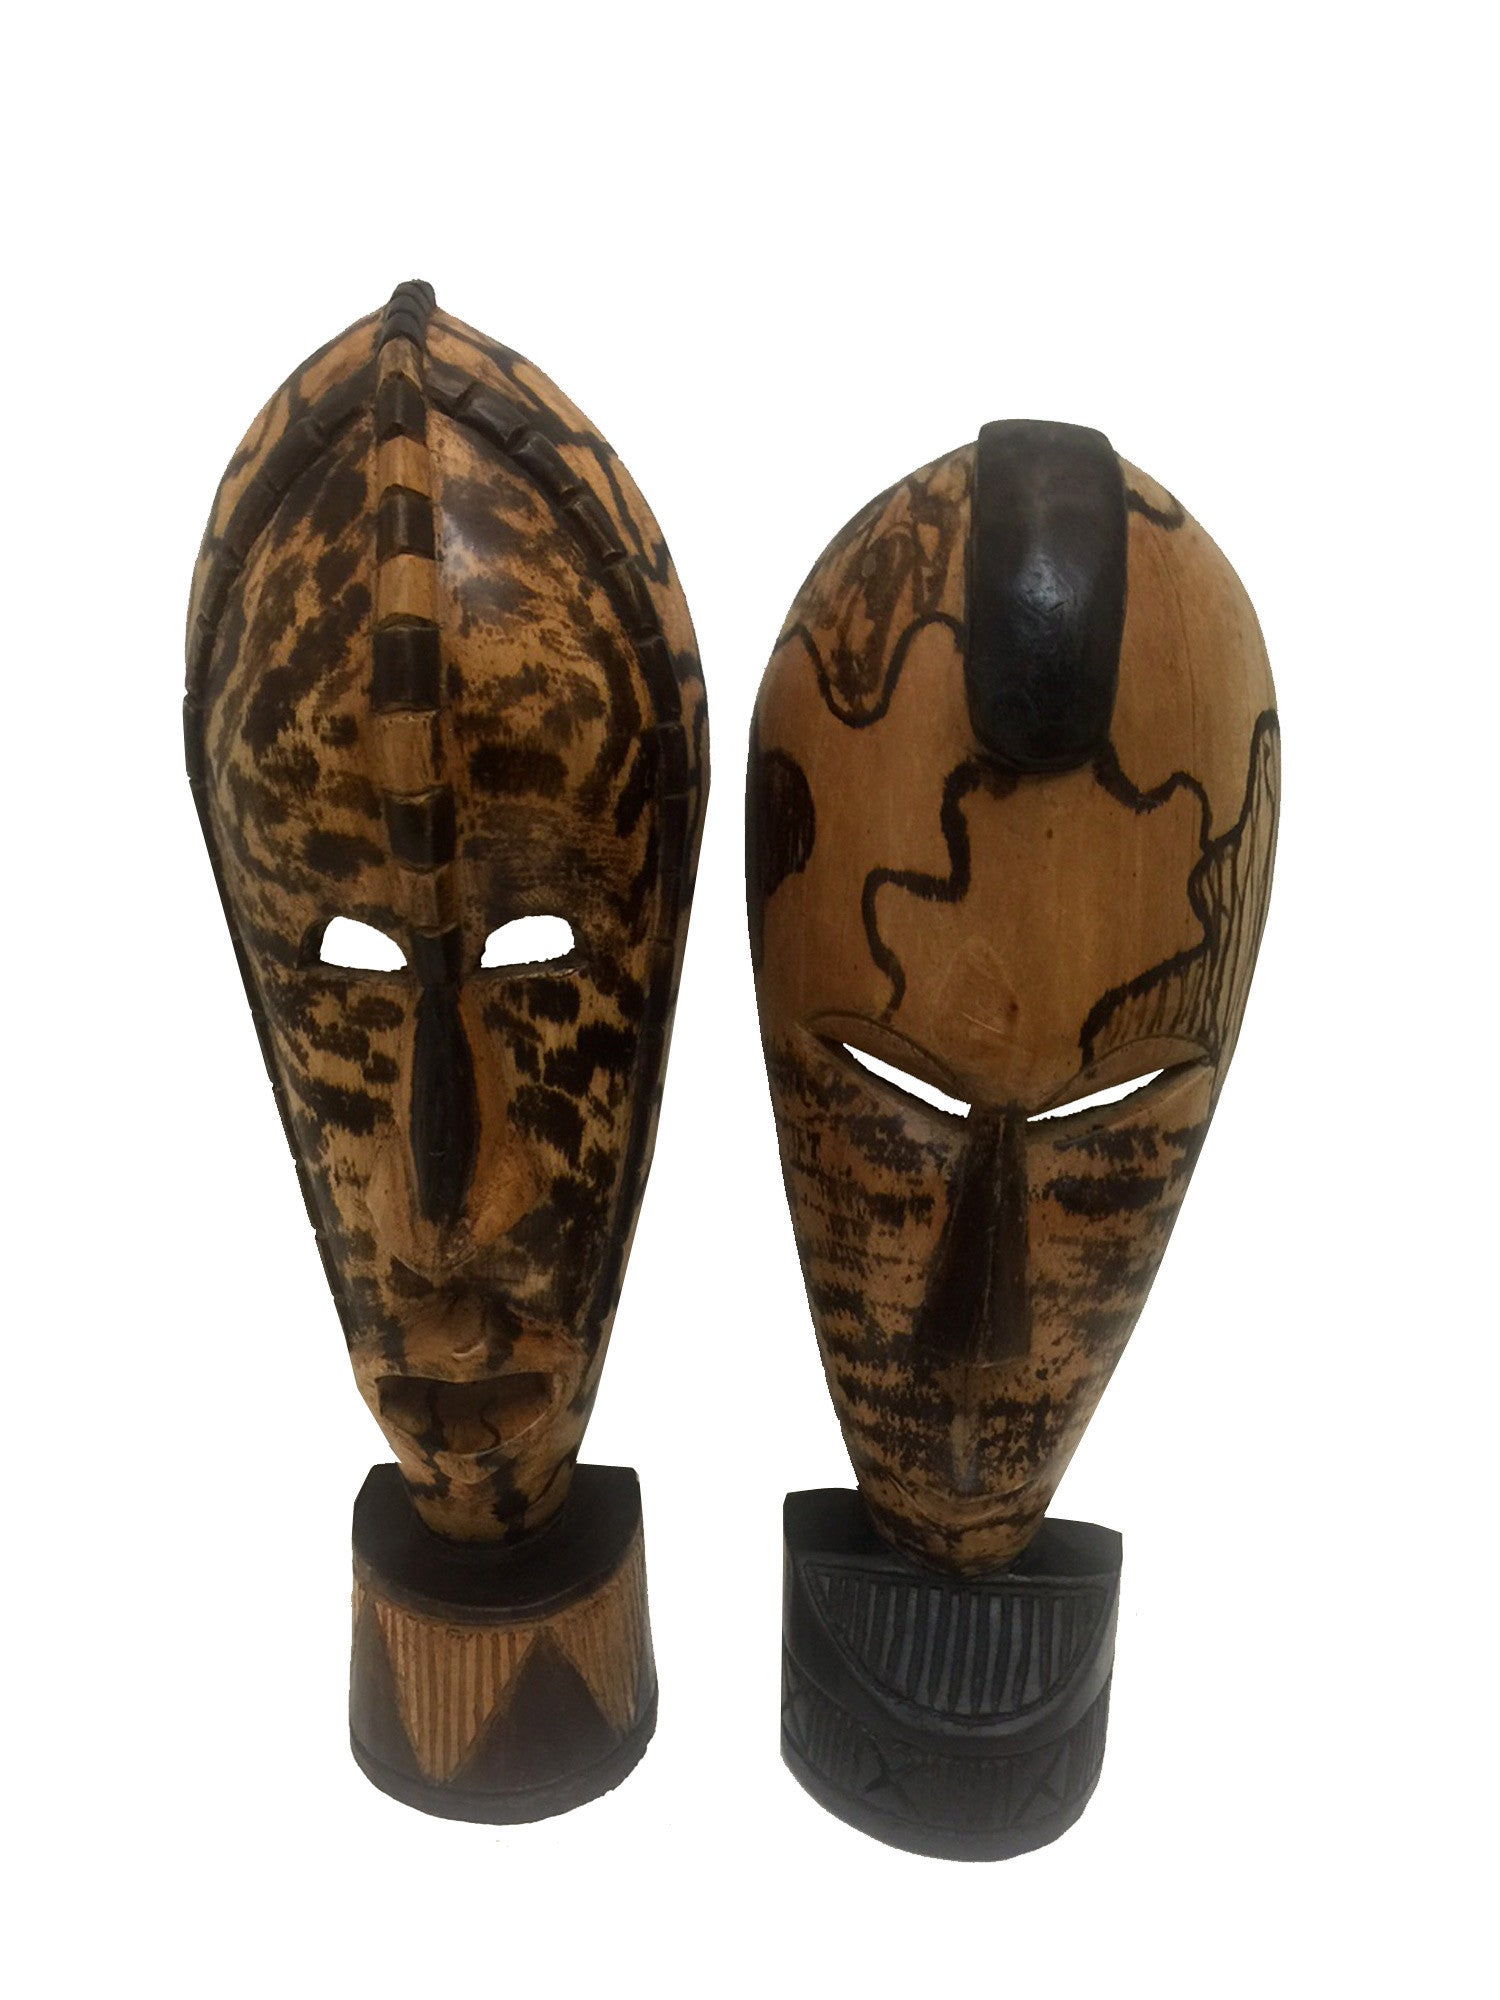 Hand Made Ghanian Joy of Friendship Masks by Kwesi Asante